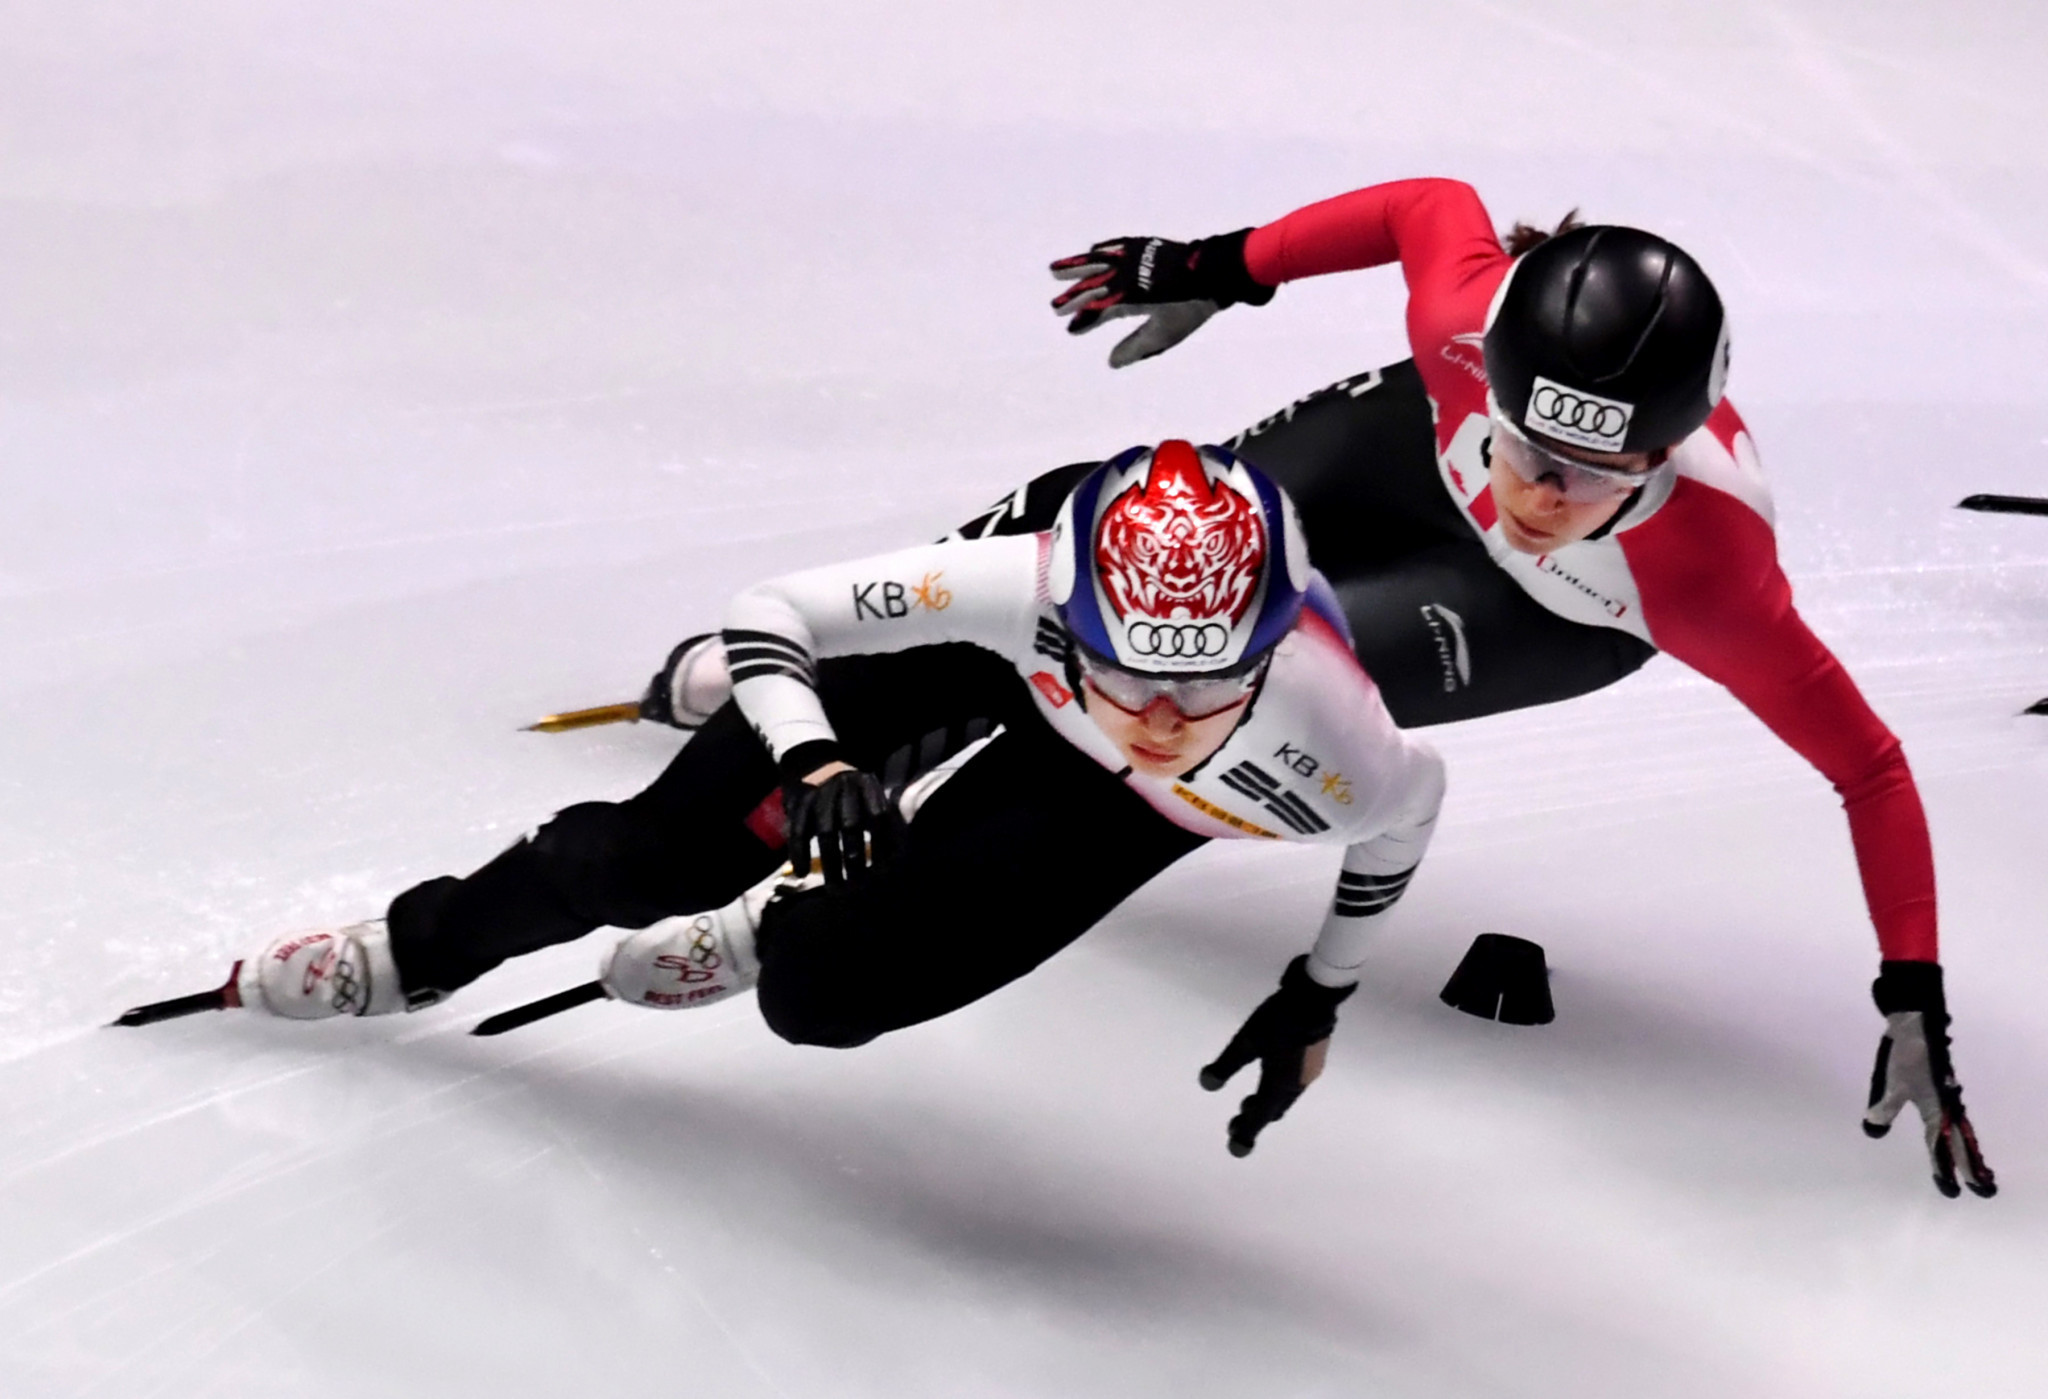 South Korea enjoy successful day of qualification at ISU Short Track World Cup